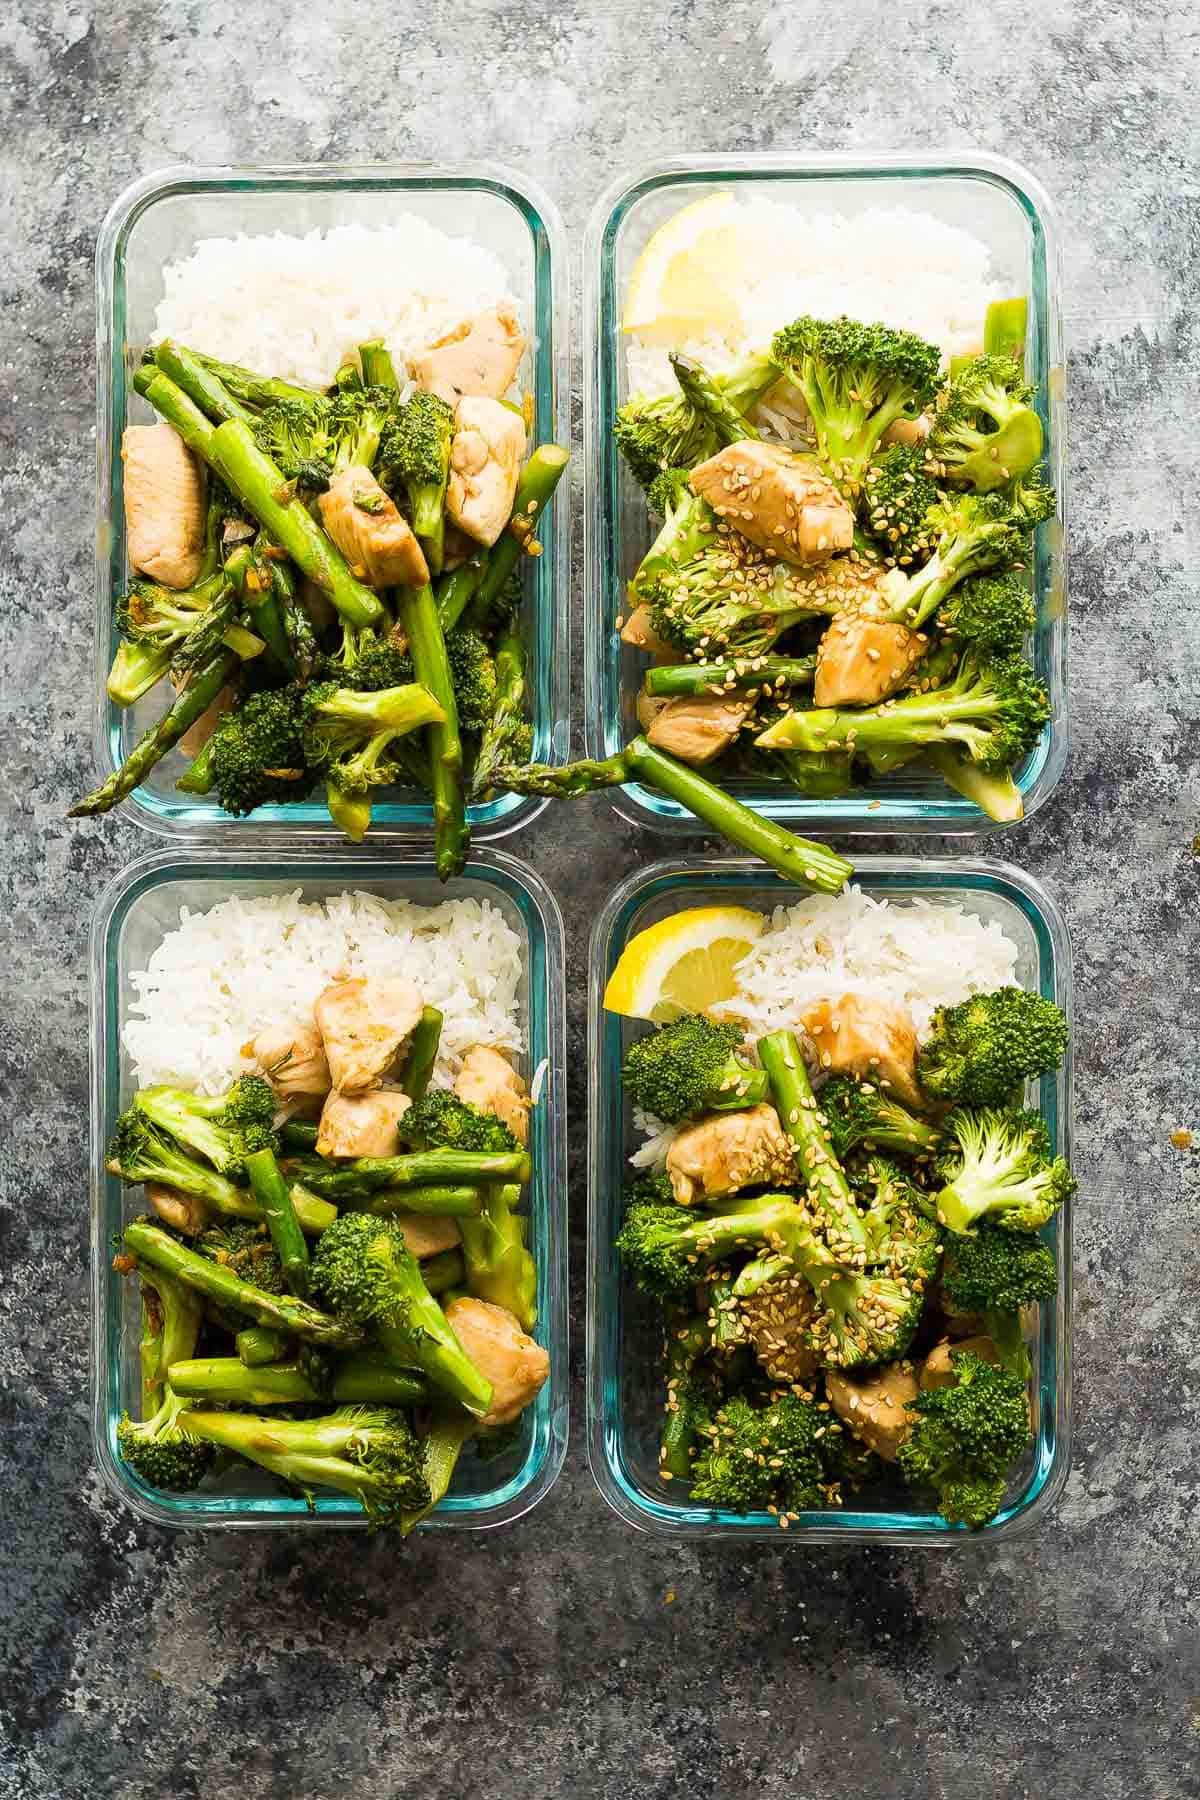 Four bowls of asparagus broccoli chicken stir fry with rice.